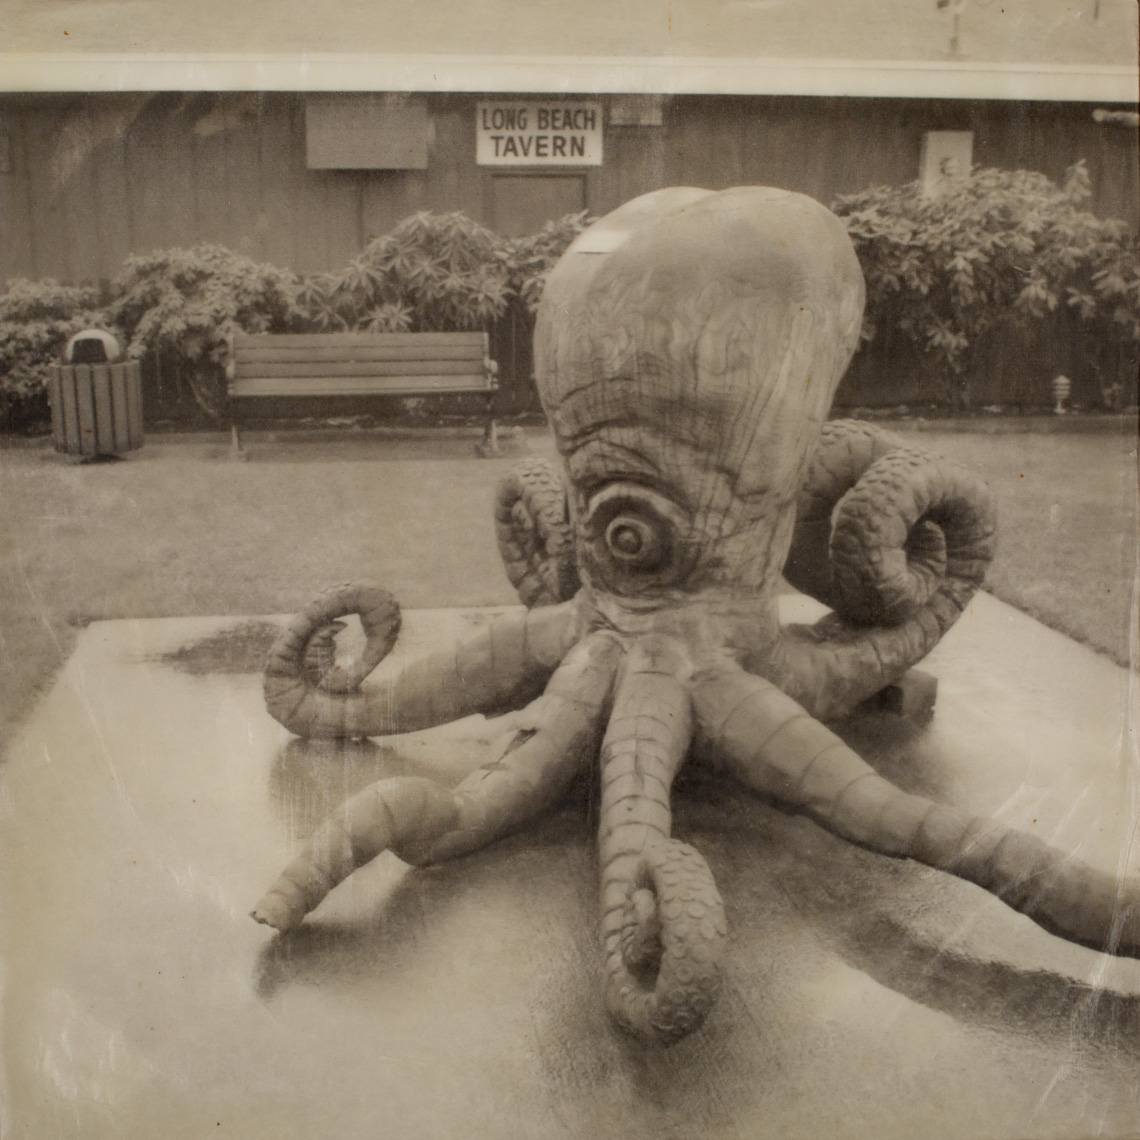 Long Beach, Octopus